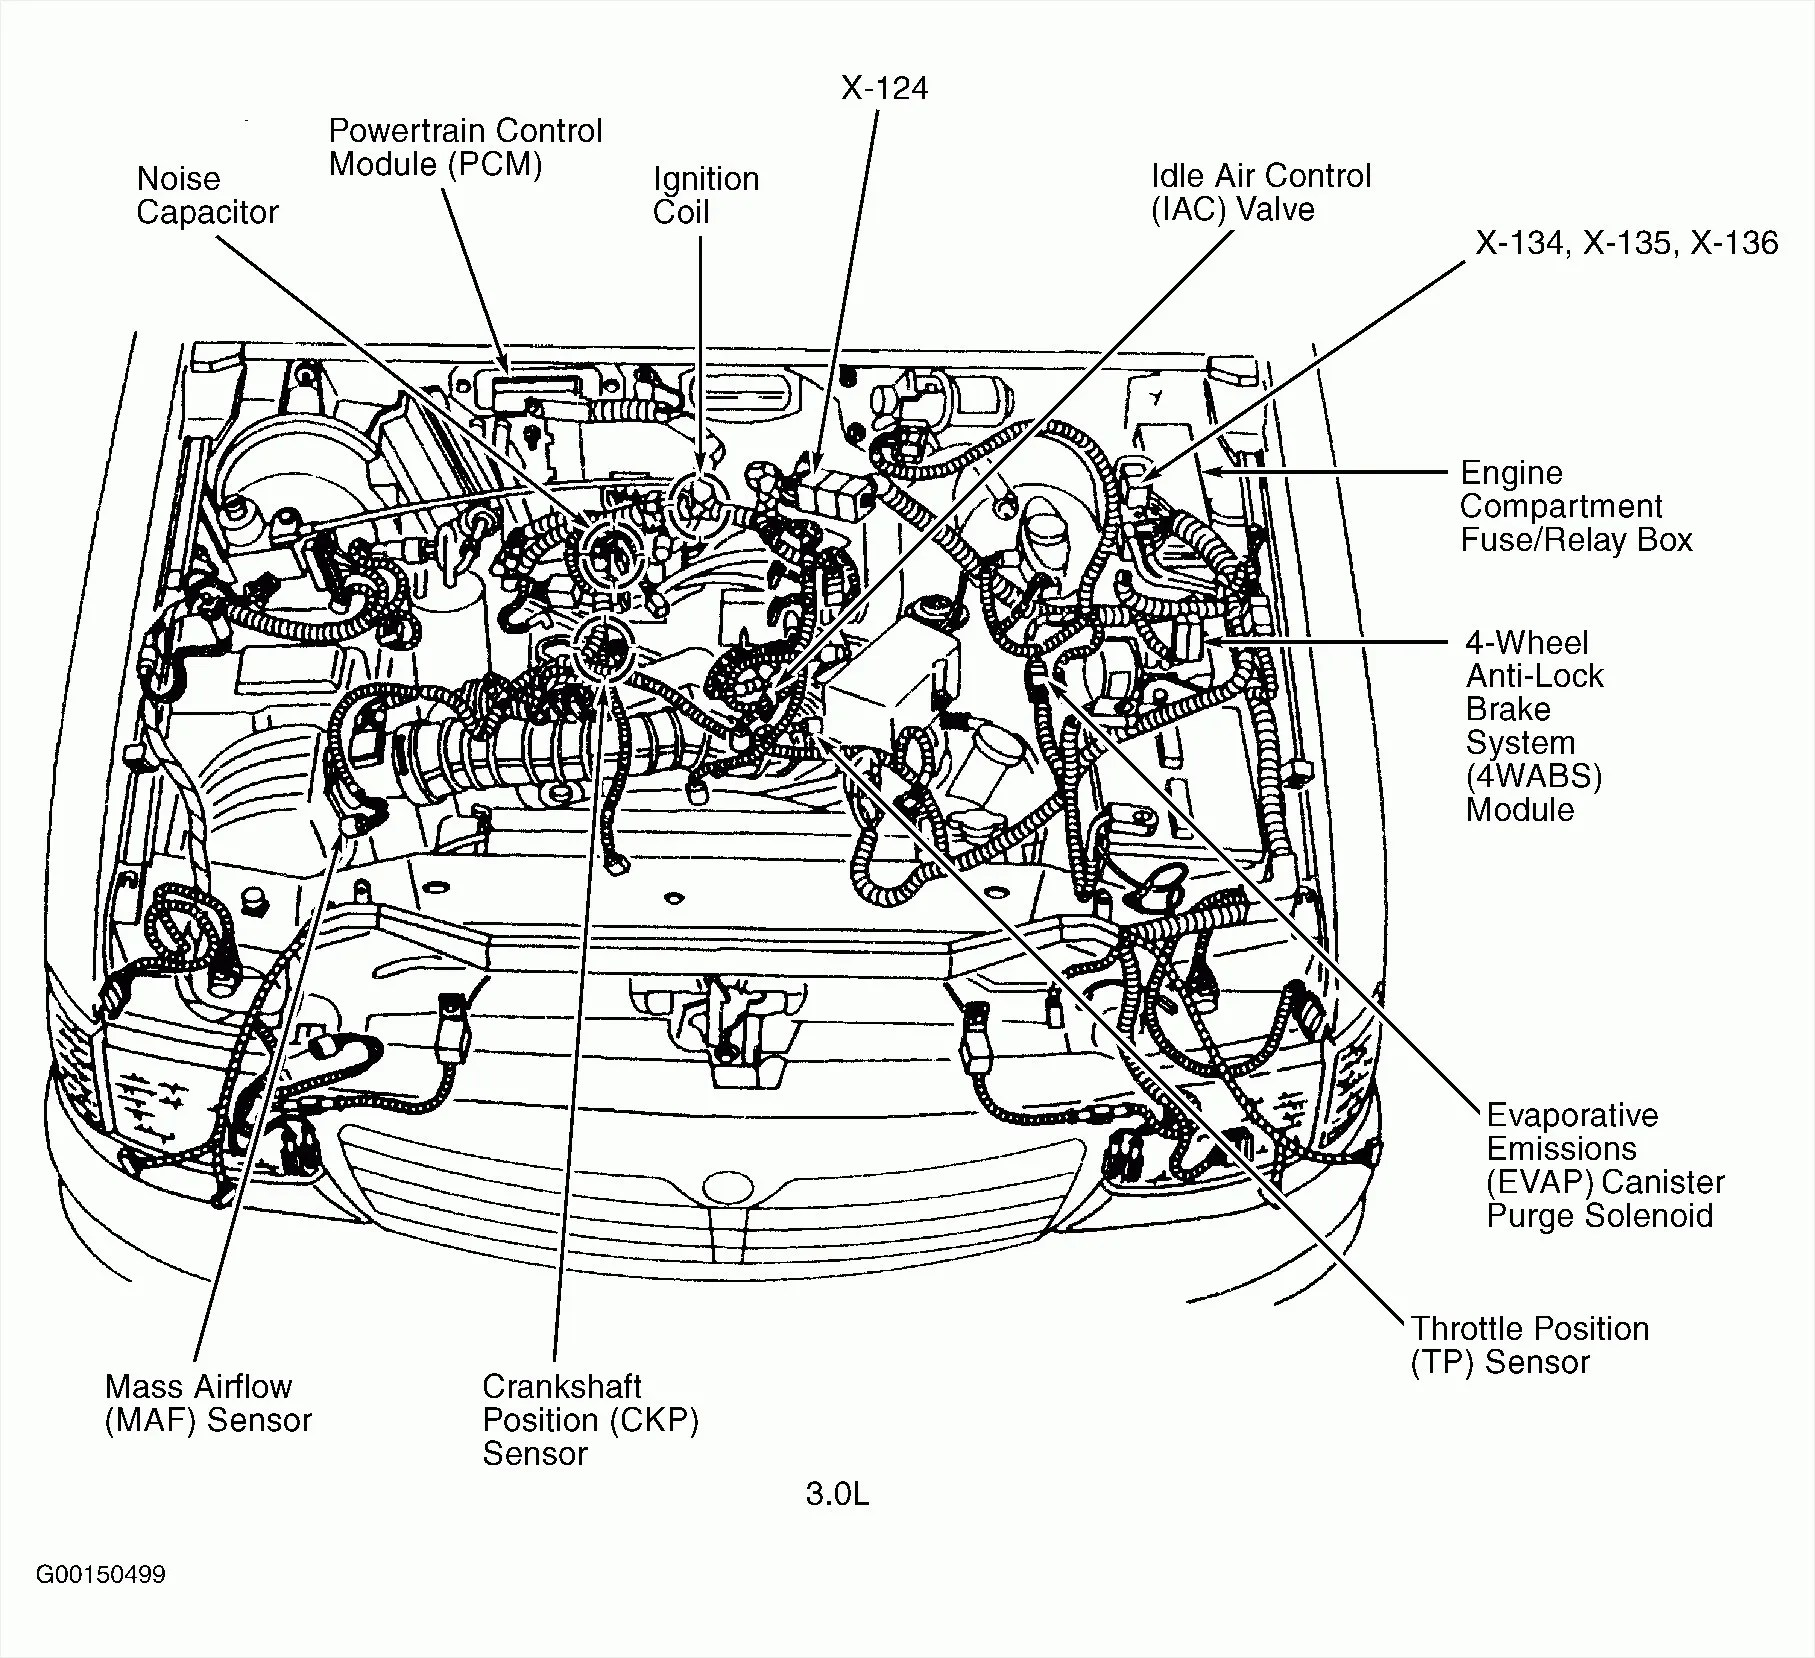 hight resolution of 1994 mustang engine compartment diagram wiring diagrams value 1994 mustang 3 8 engine diagram wiring diagram